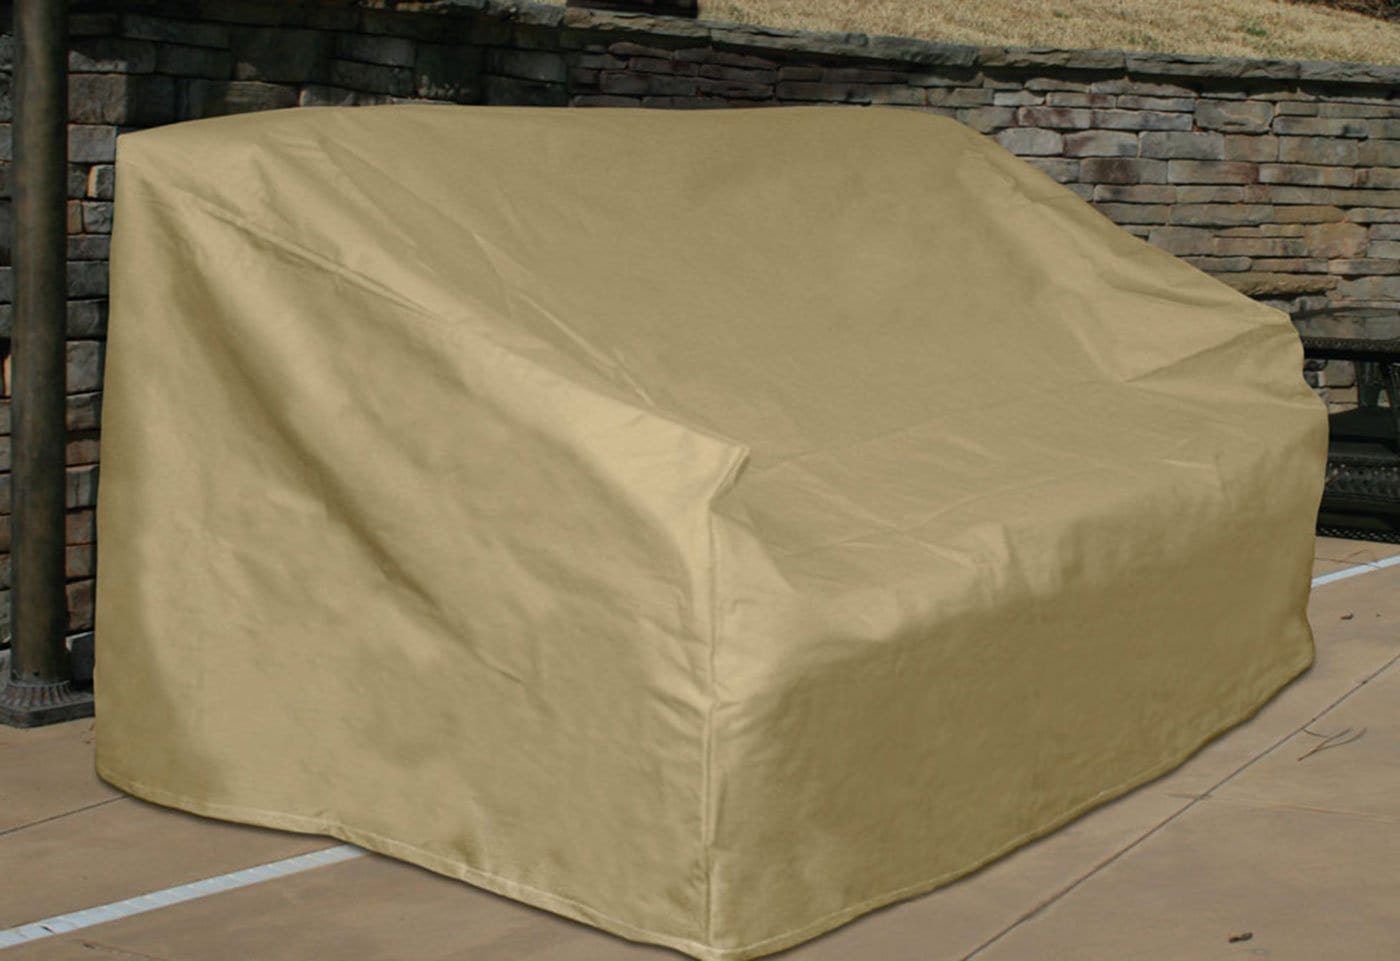 Hearth U0026 Garden Sofa Outdoor Furniture Cover